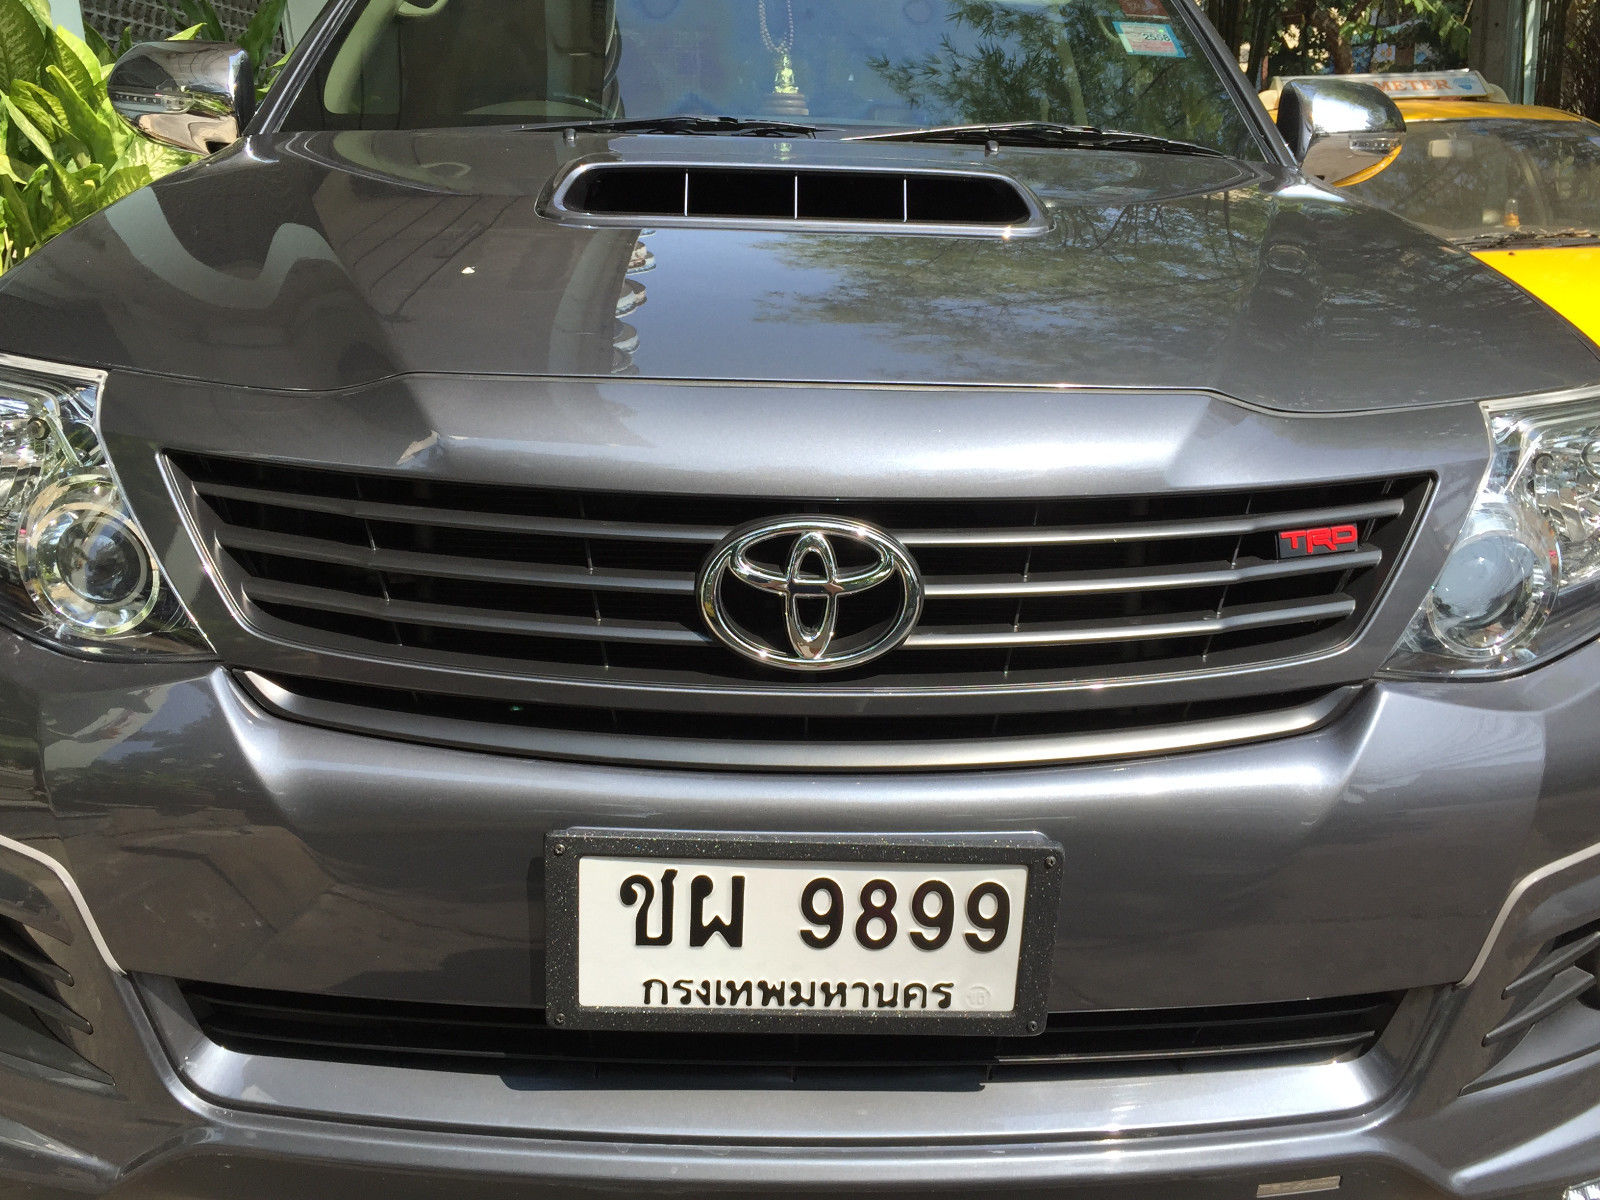 For Toyota Fortuner Suv Unpainted Front Grille Trd Style